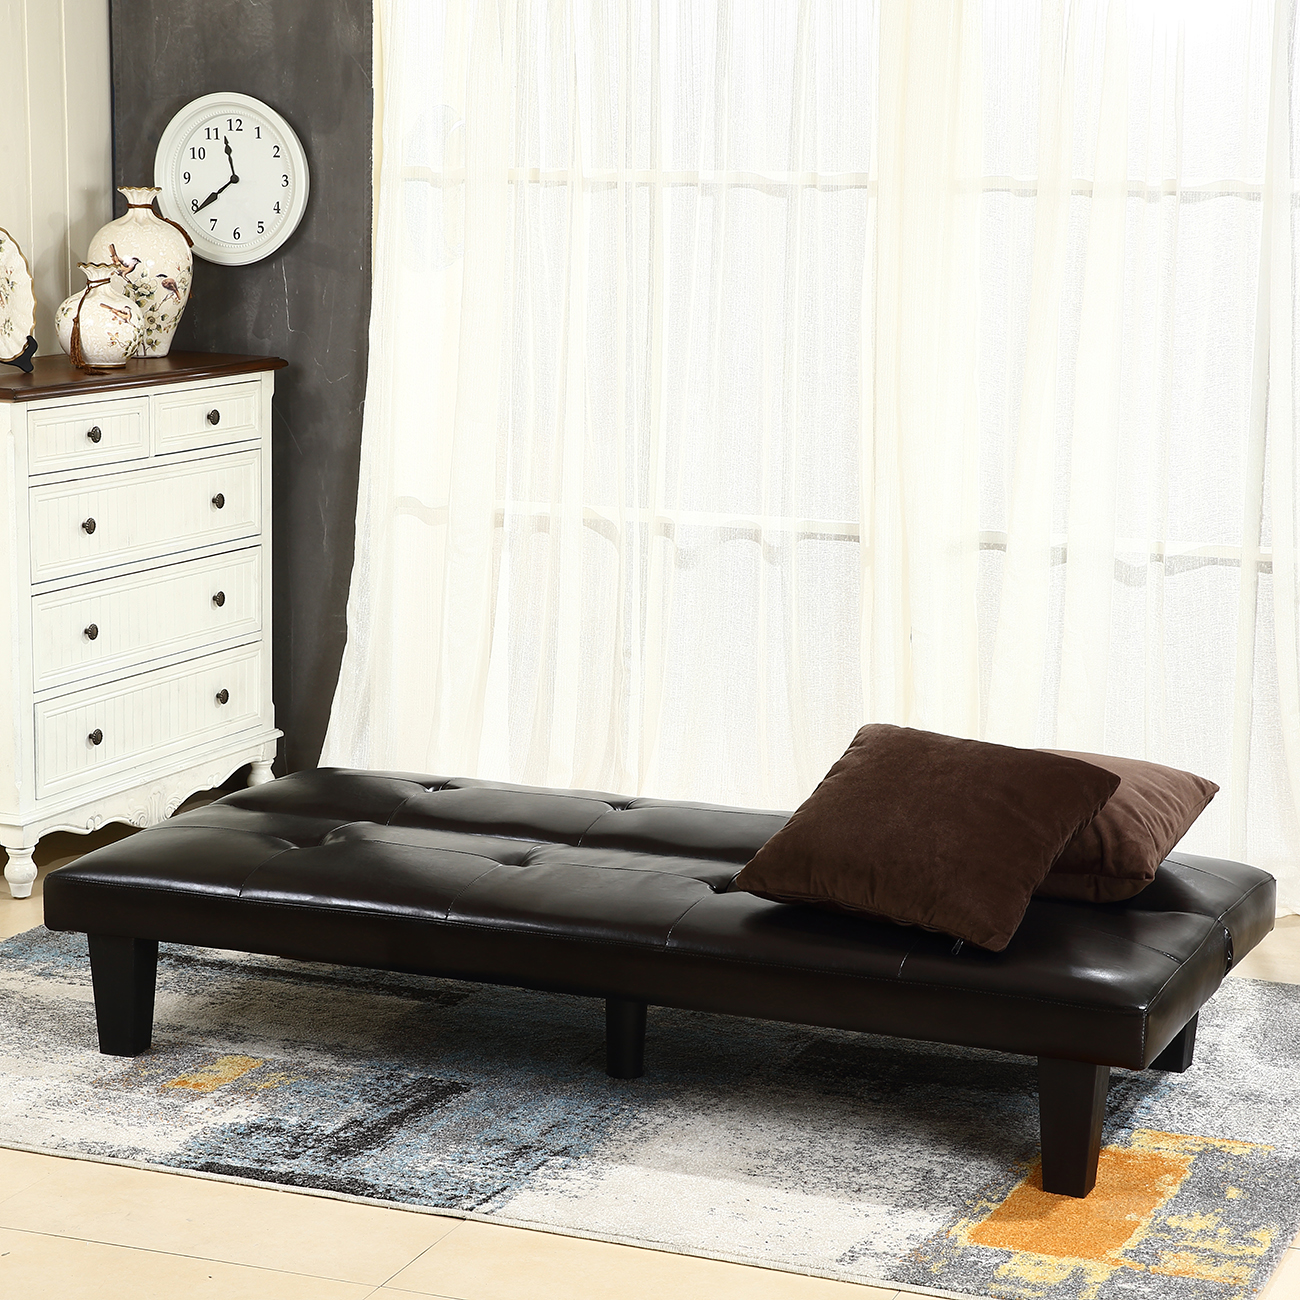 sectional mancave pin harkinsfamilymattress garage loveseat livingroom couch dorm sofa